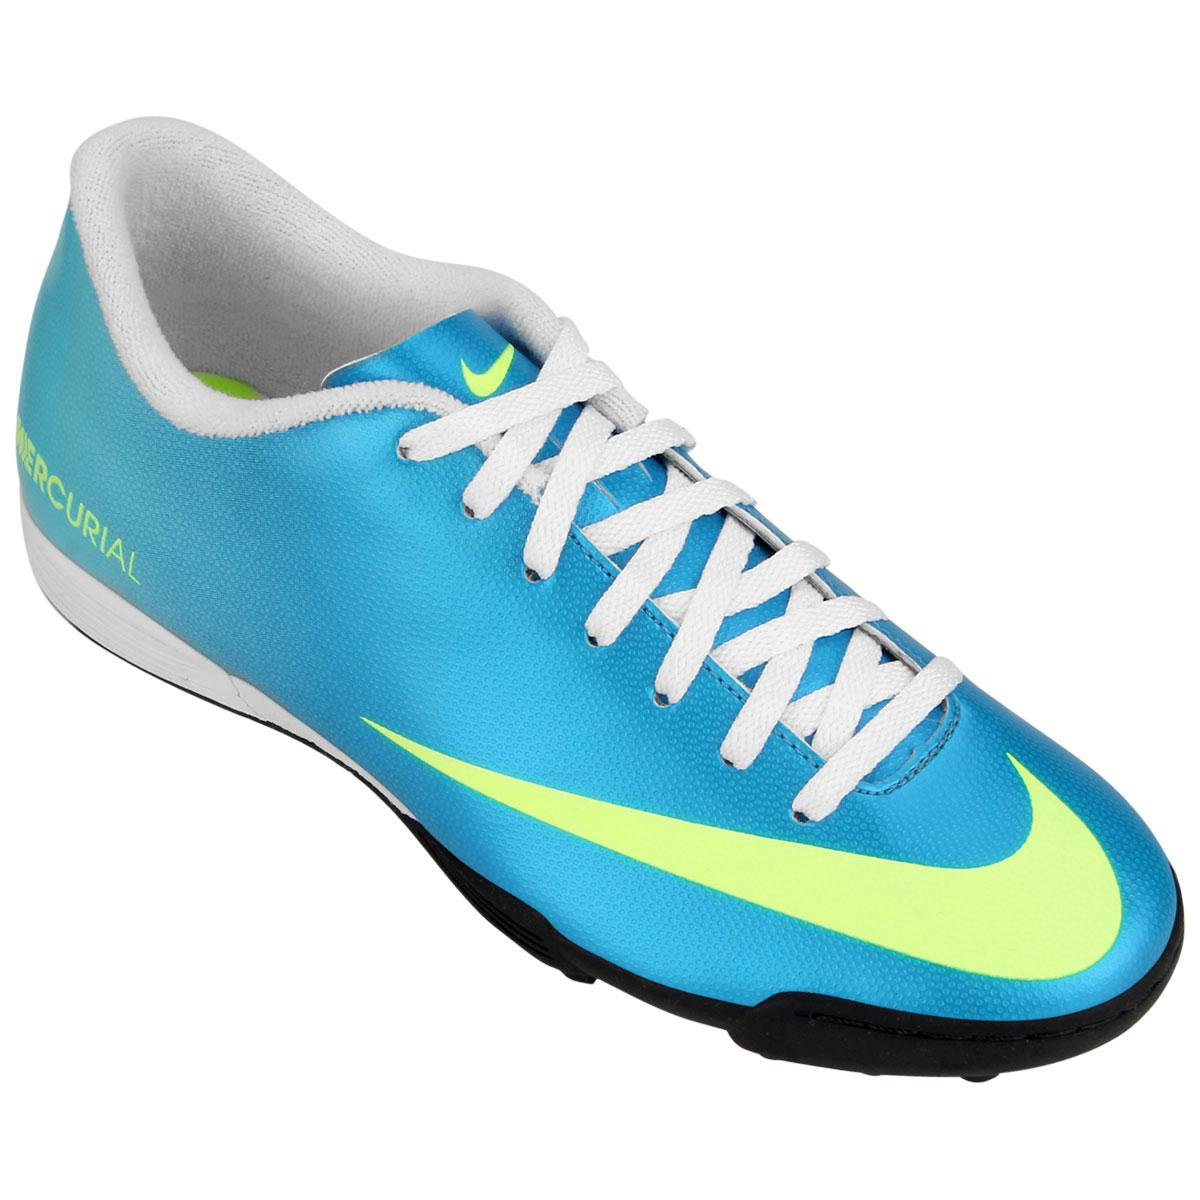 1138c0674 911ad 9bc21  purchase nike mercurial superfly cr7 netshoes . chuteira nike  mercurial vortex tf azul turquesa e verde